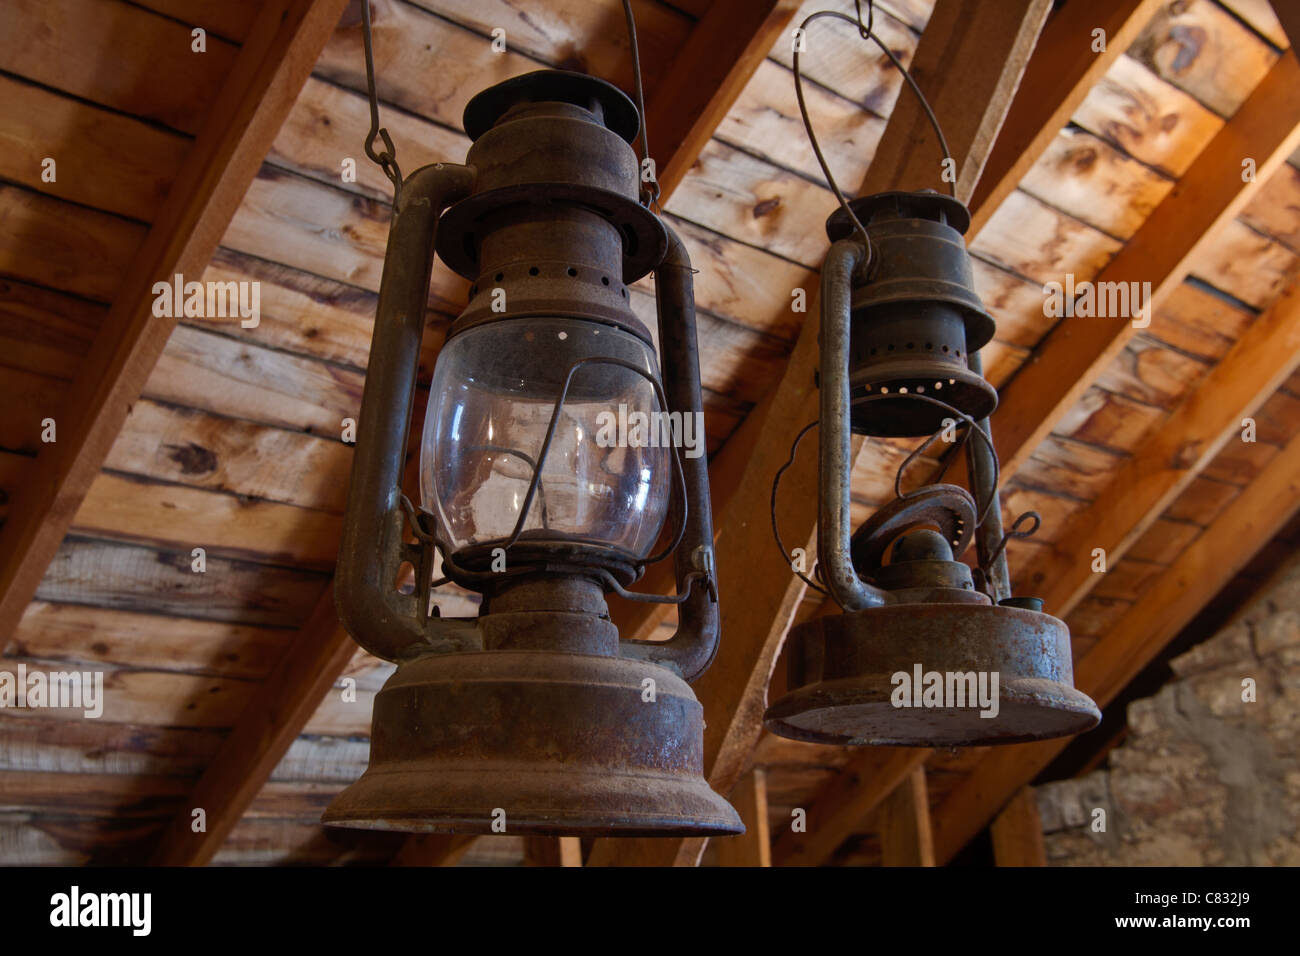 Antique oil lanterns hanging in a barn - Stock Image